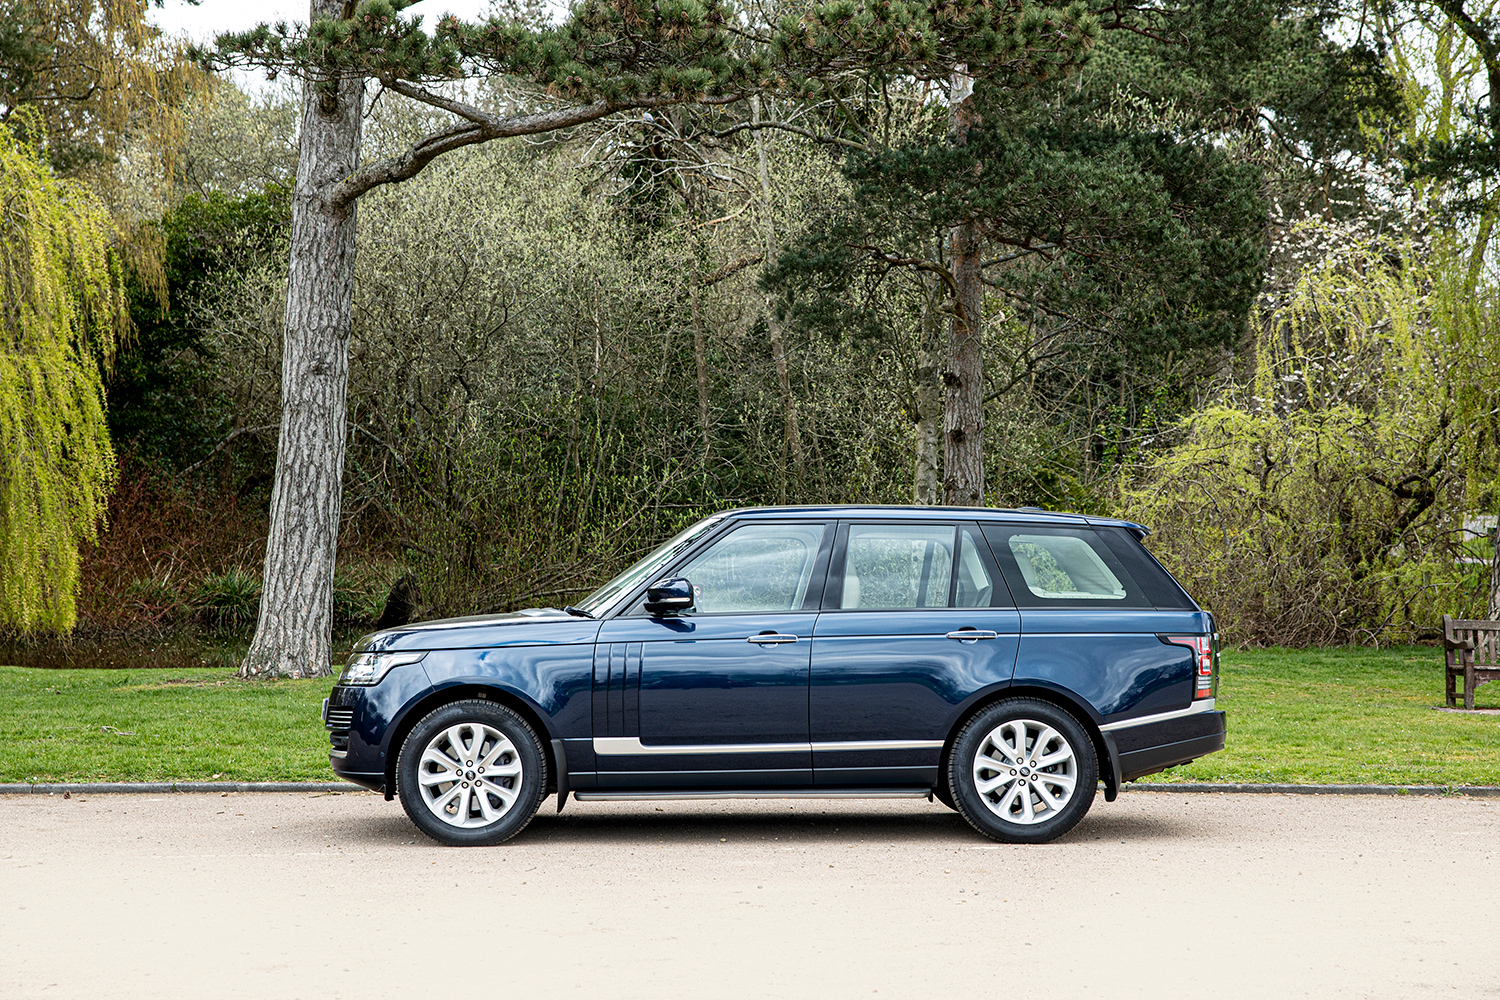 William and Kate Range Rover